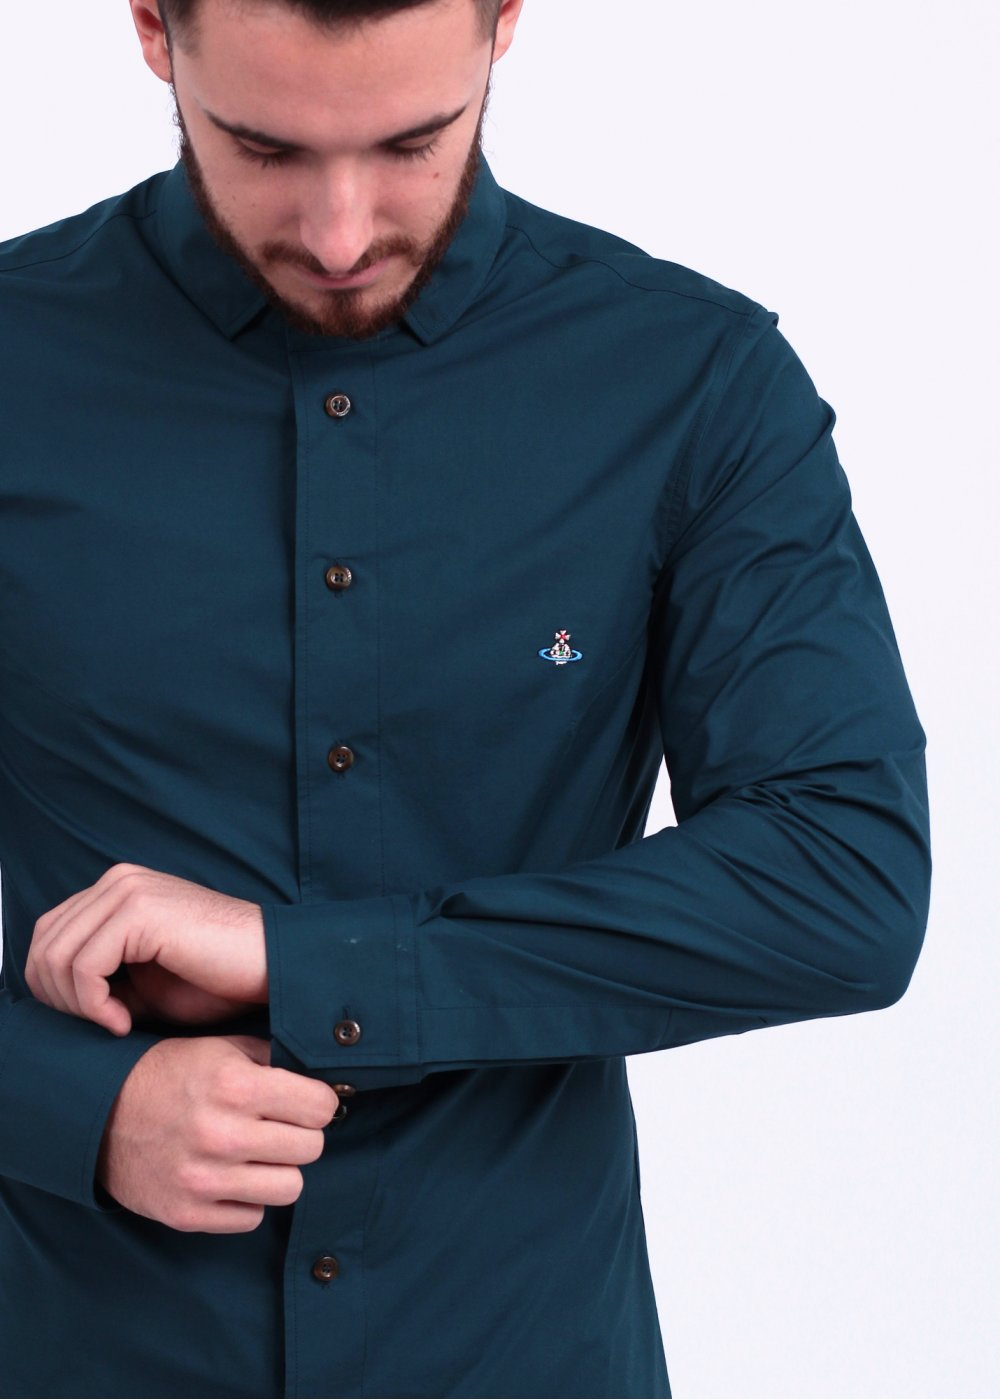 Teal Shirt Mens Custom Shirt